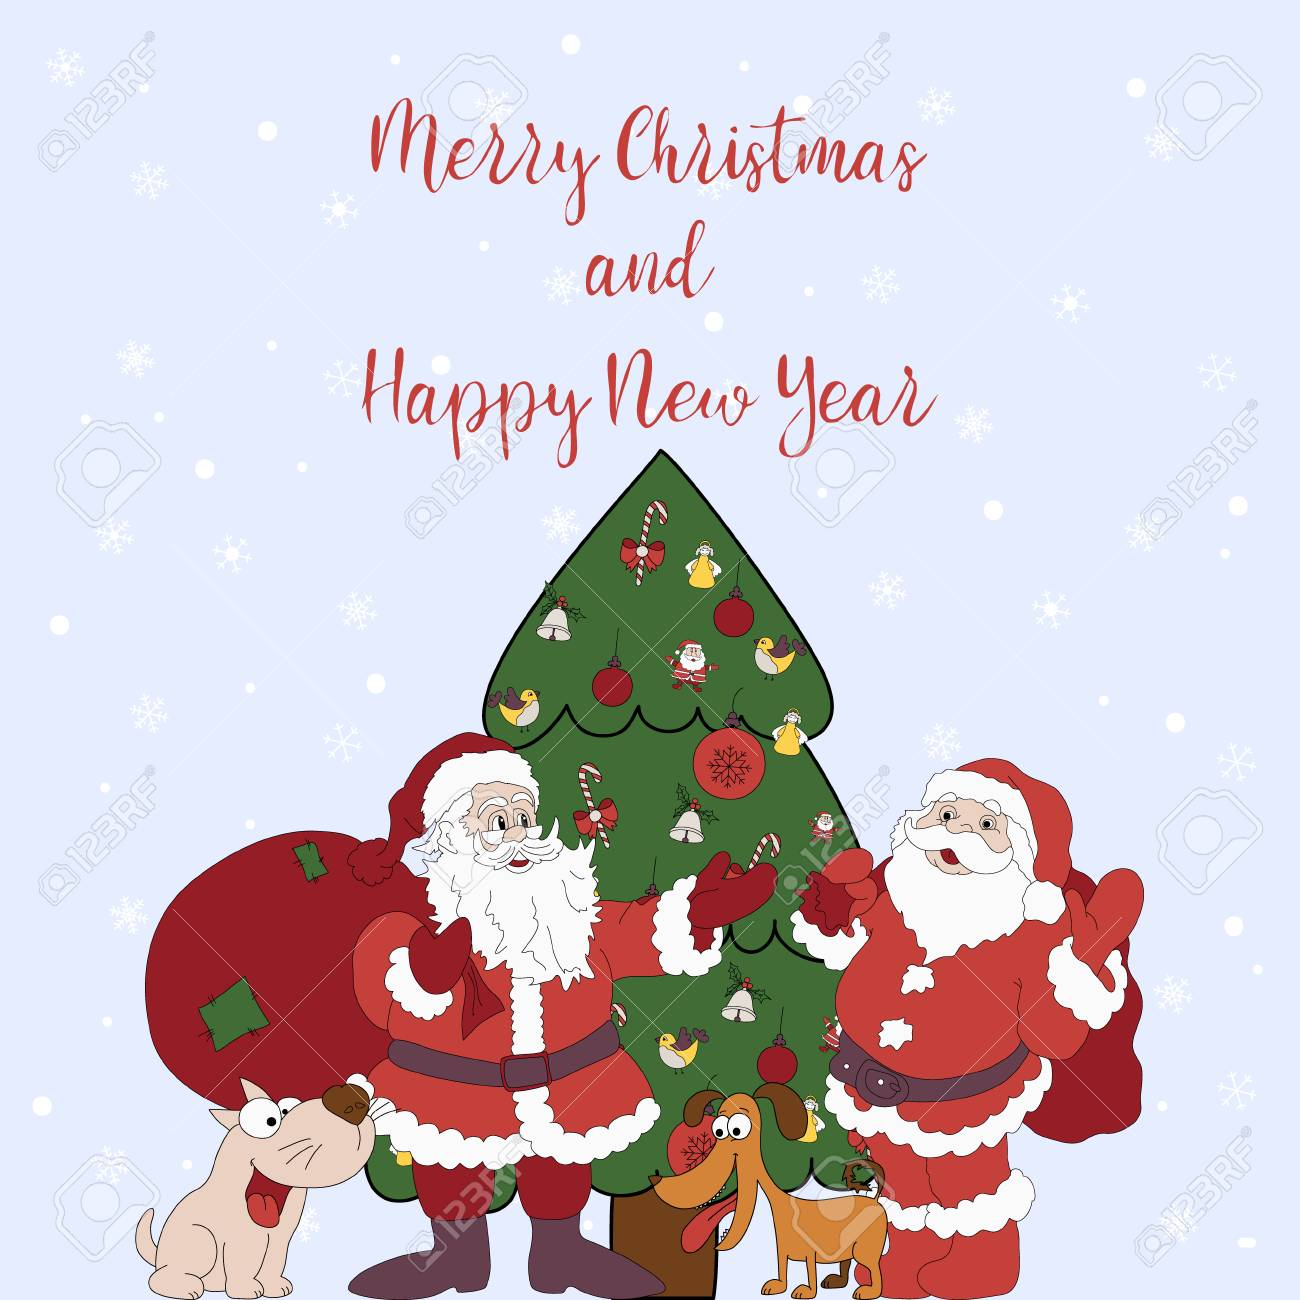 Merry Christmas Puppies.Merry Christmas And Happy New Year Cartoon Greeting Card With